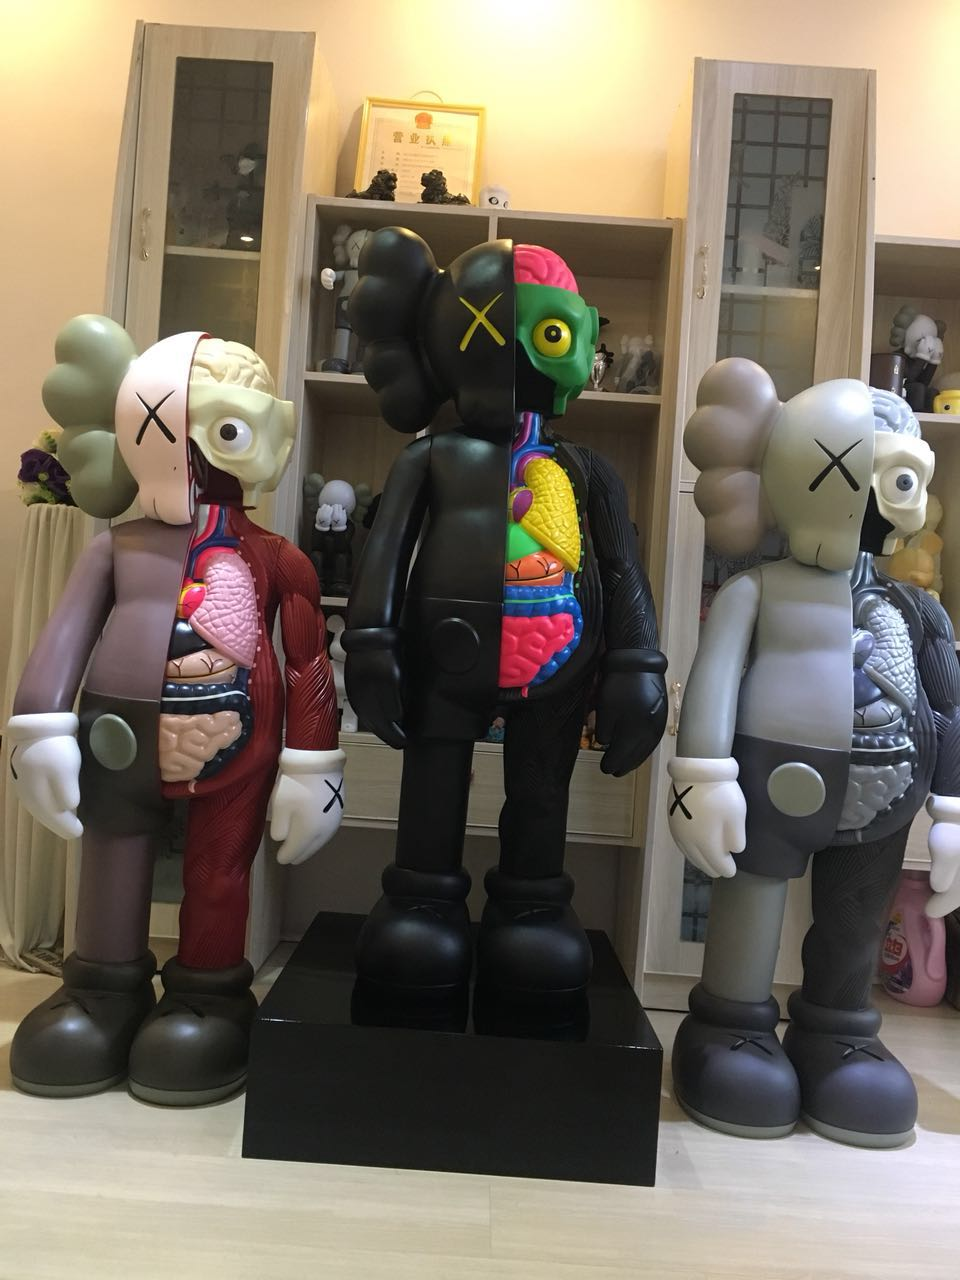 [New] Original fake KAWS 130cm 4ft kaws dissected 1:1 collection action figures toy OriginalFake model Home Decoration gift